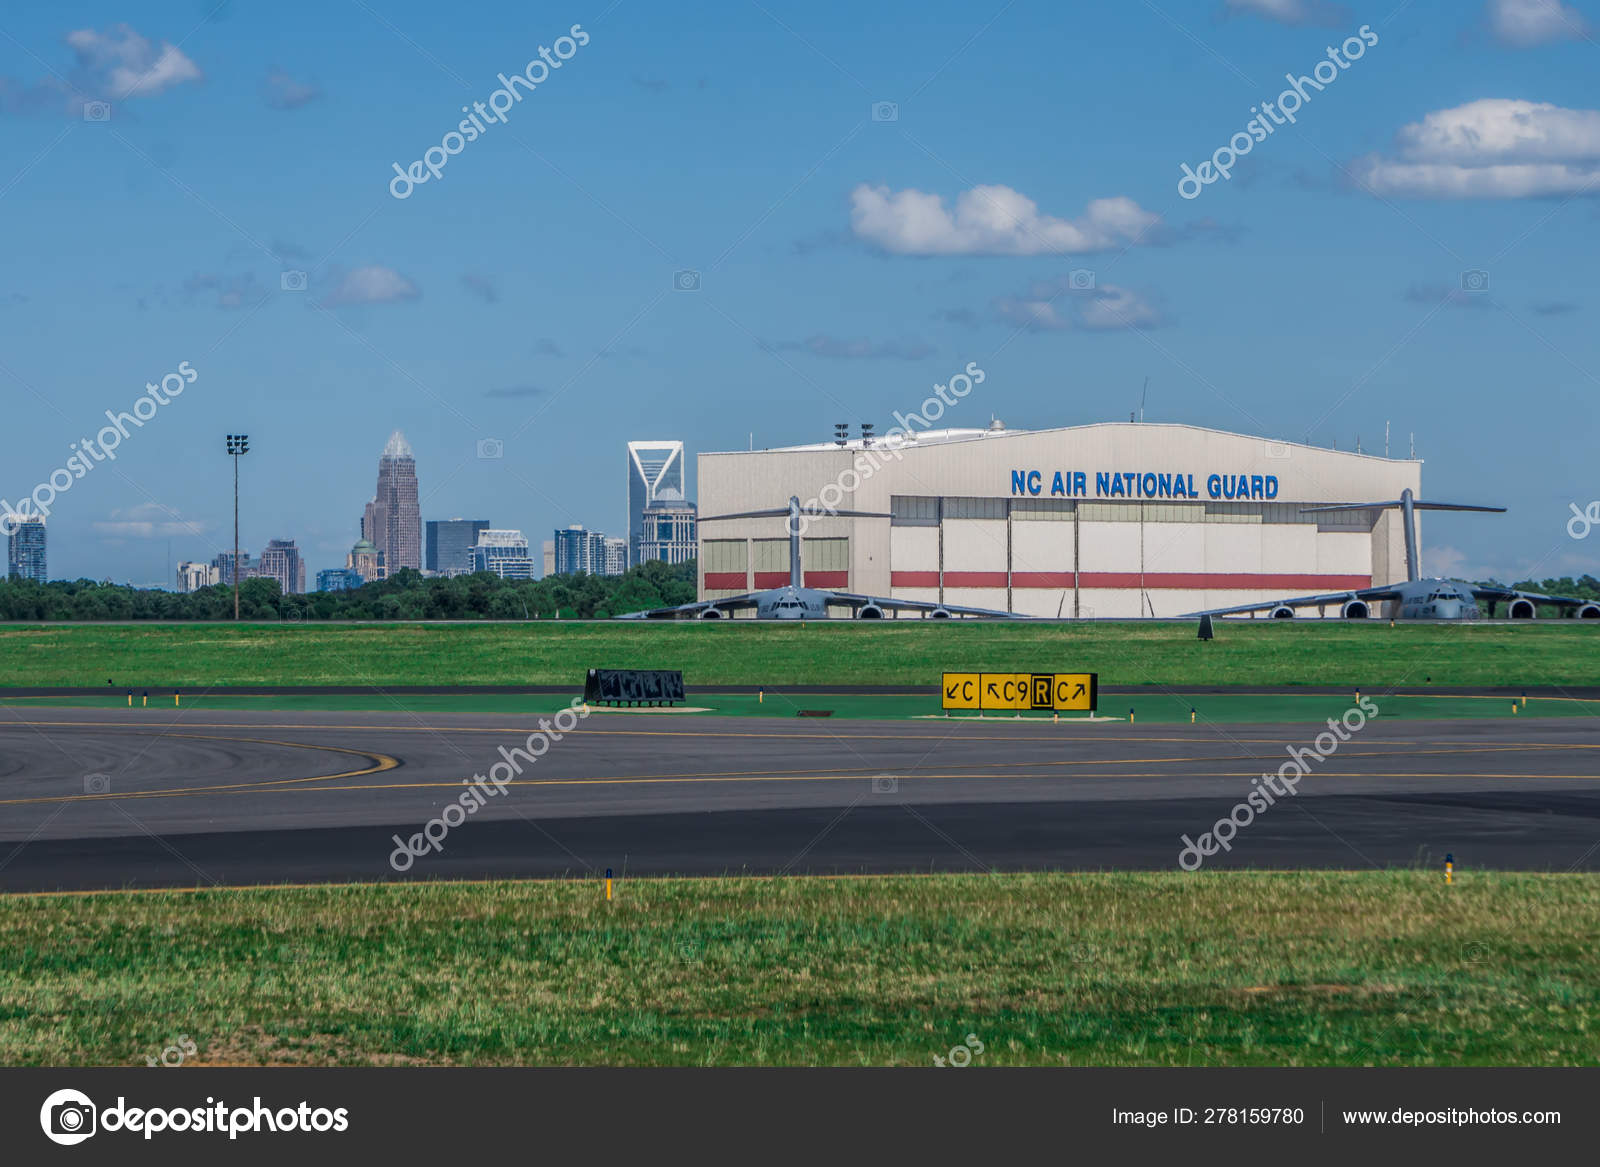 Scenes from charlotte north carolina airport – Stock